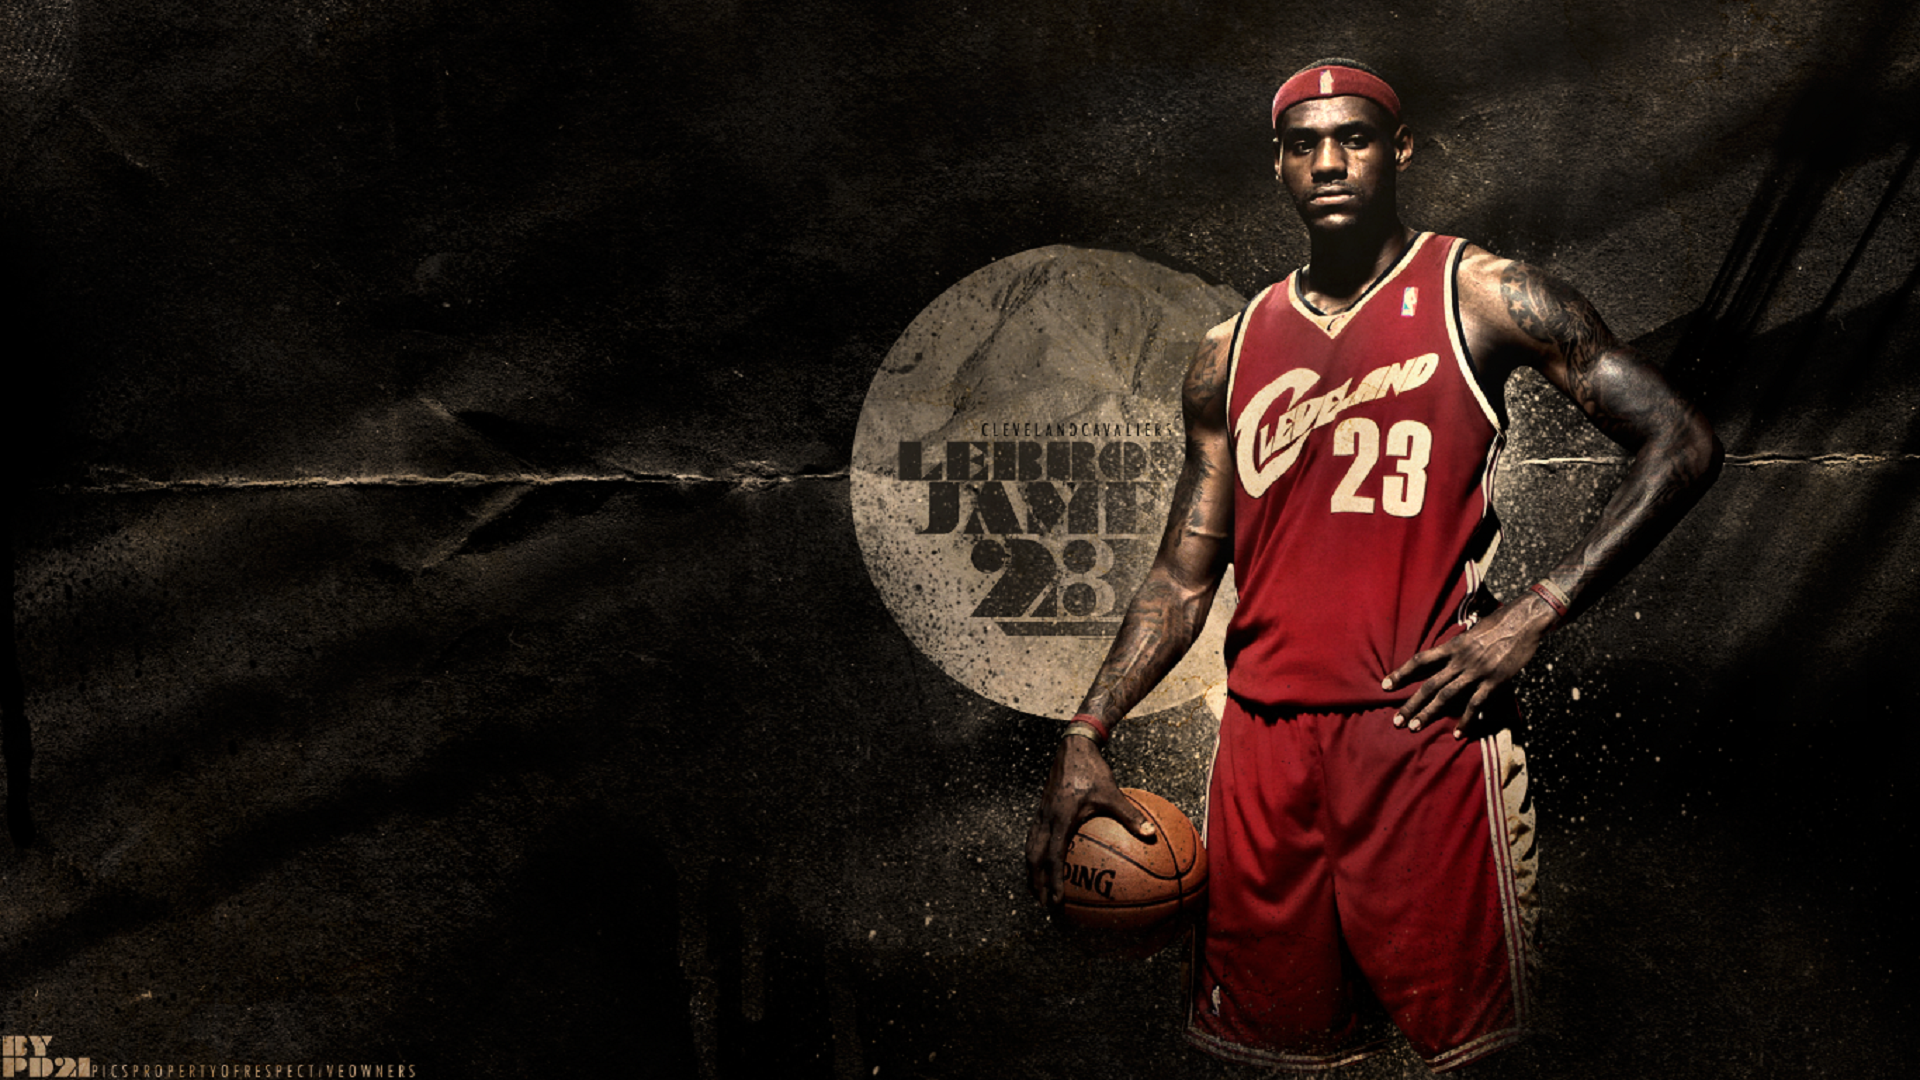 basketball wallpapers basketball wallpapers 2015 basketball wallpapers 1920x1080